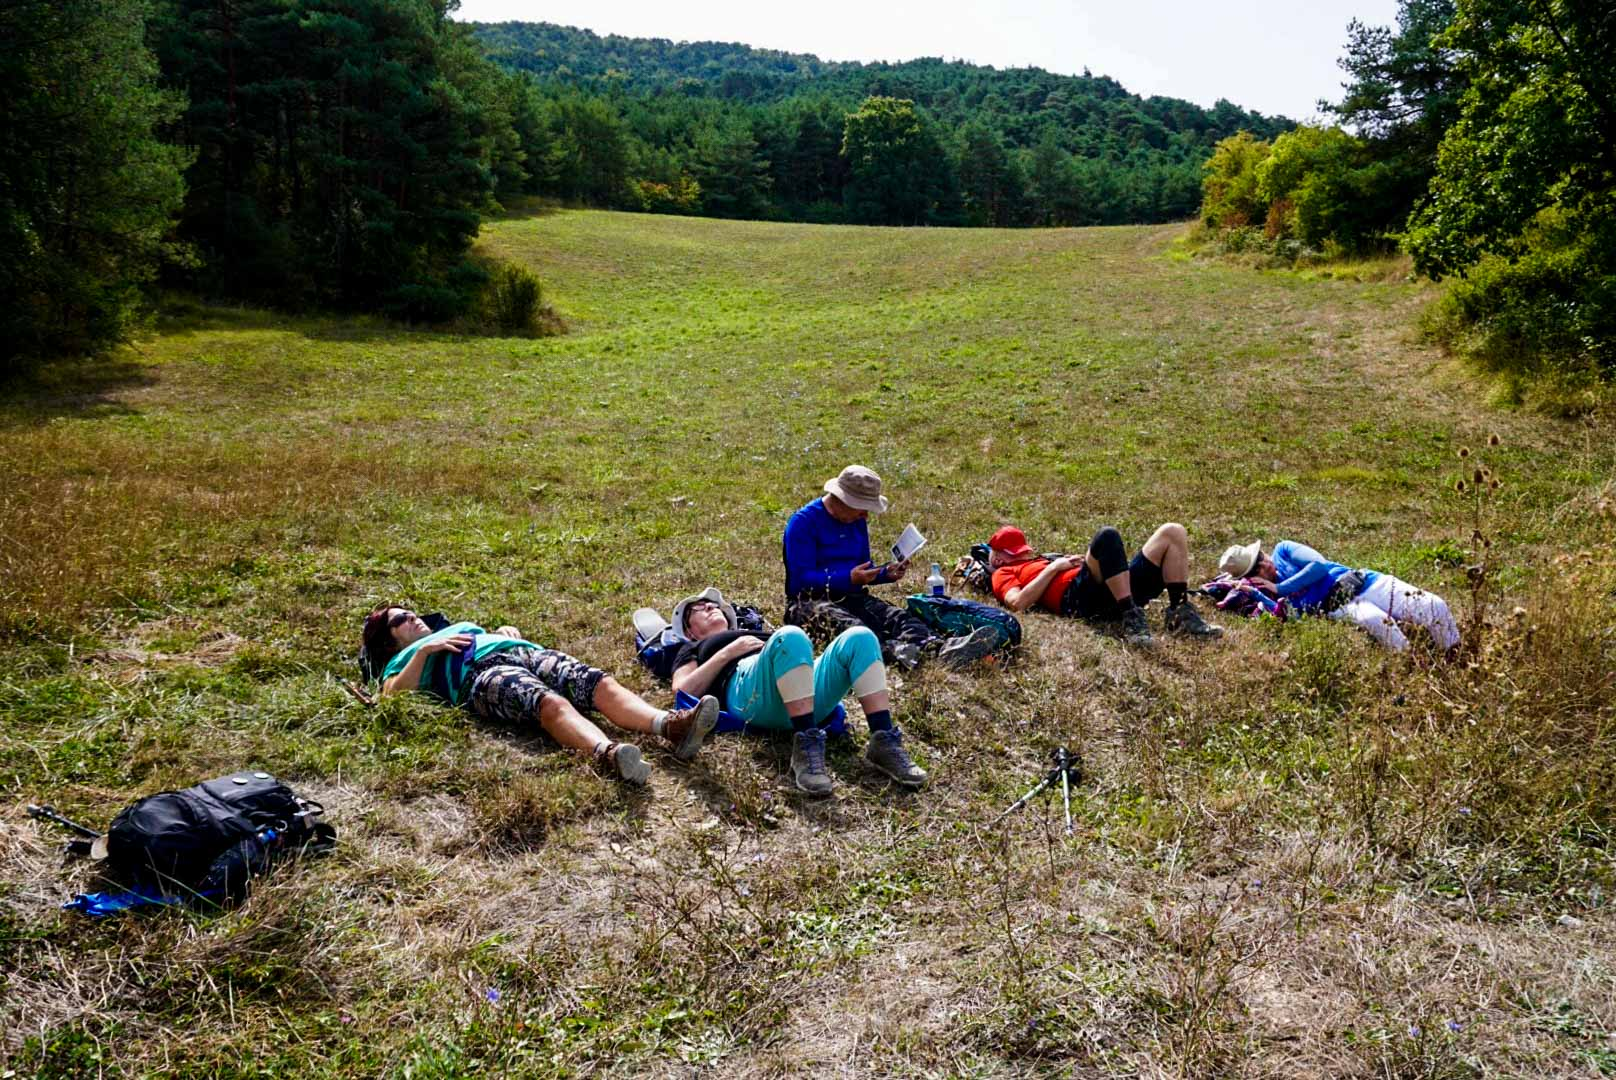 The Augustinian Camino group resting along the Camino De Santiago.